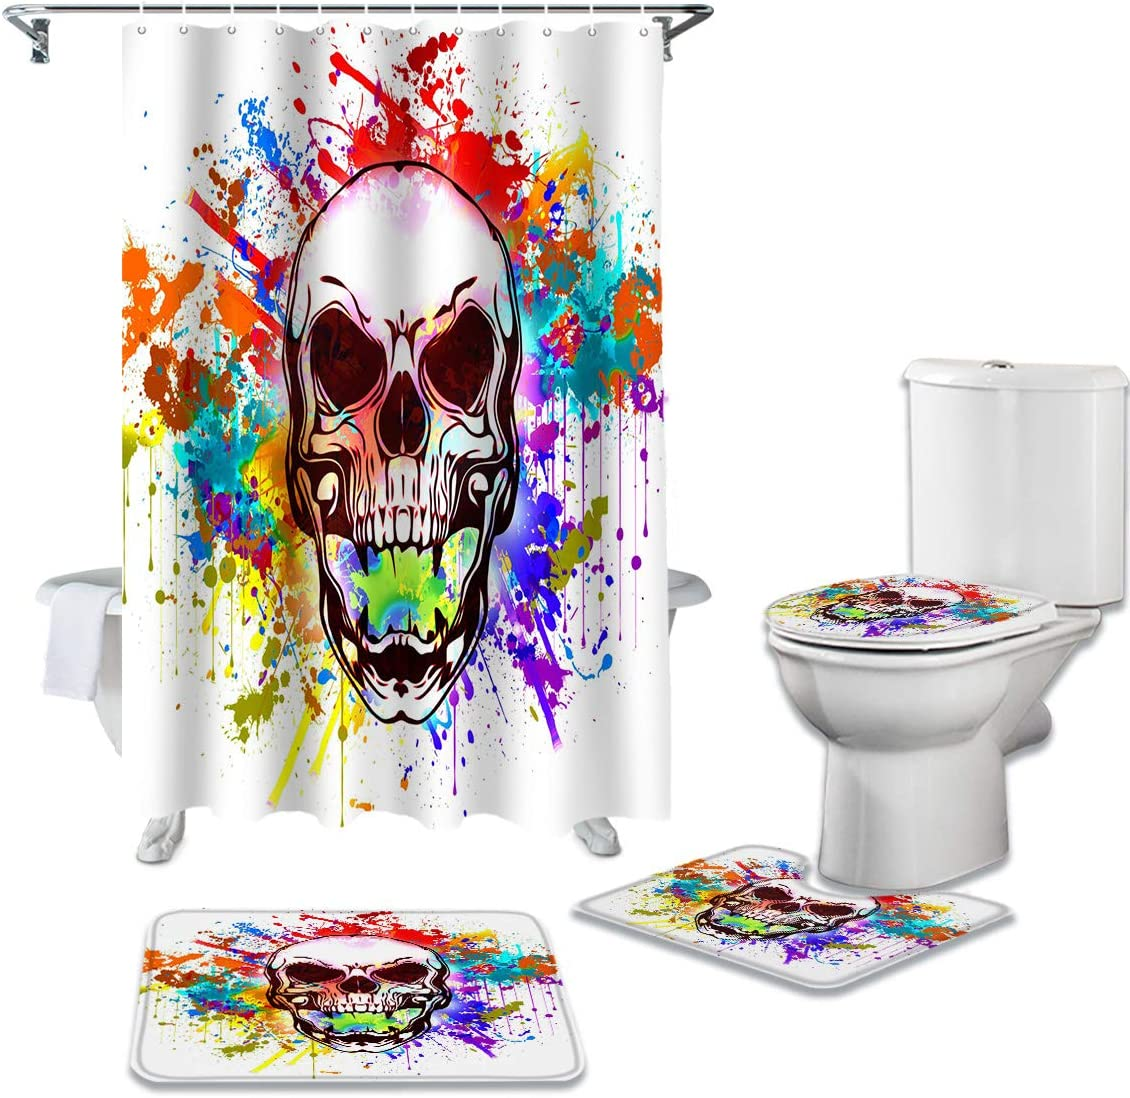 CHARMHOME 4 Piece Shower Curtain Toilet Rug Non-Slip Max Rare 66% OFF with Sets